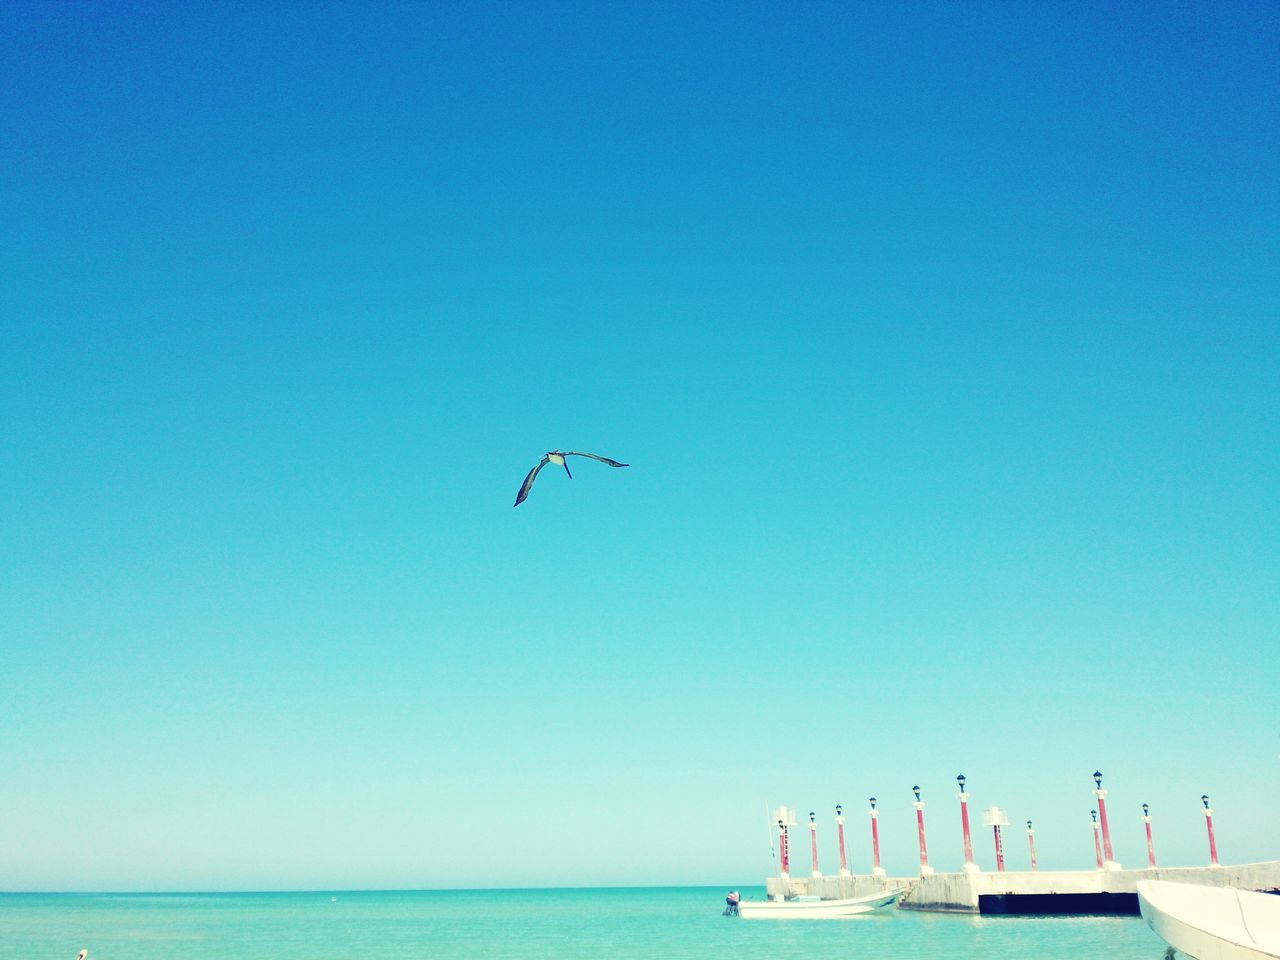 Hunting at Sisal. Yucatan Mexico Birds And Blue Sky Birds🐦⛅ Birds In Flight Birds Flying Birds Beauty In Nature Blue Sky No People Nature Amazing Day Xperia ZL Mobile Photography Landscape Hunting Bird Animals Seascape Sea And Sky Beach Photography Beach Puerto Sisal Boats⛵️ Betterlandscapes